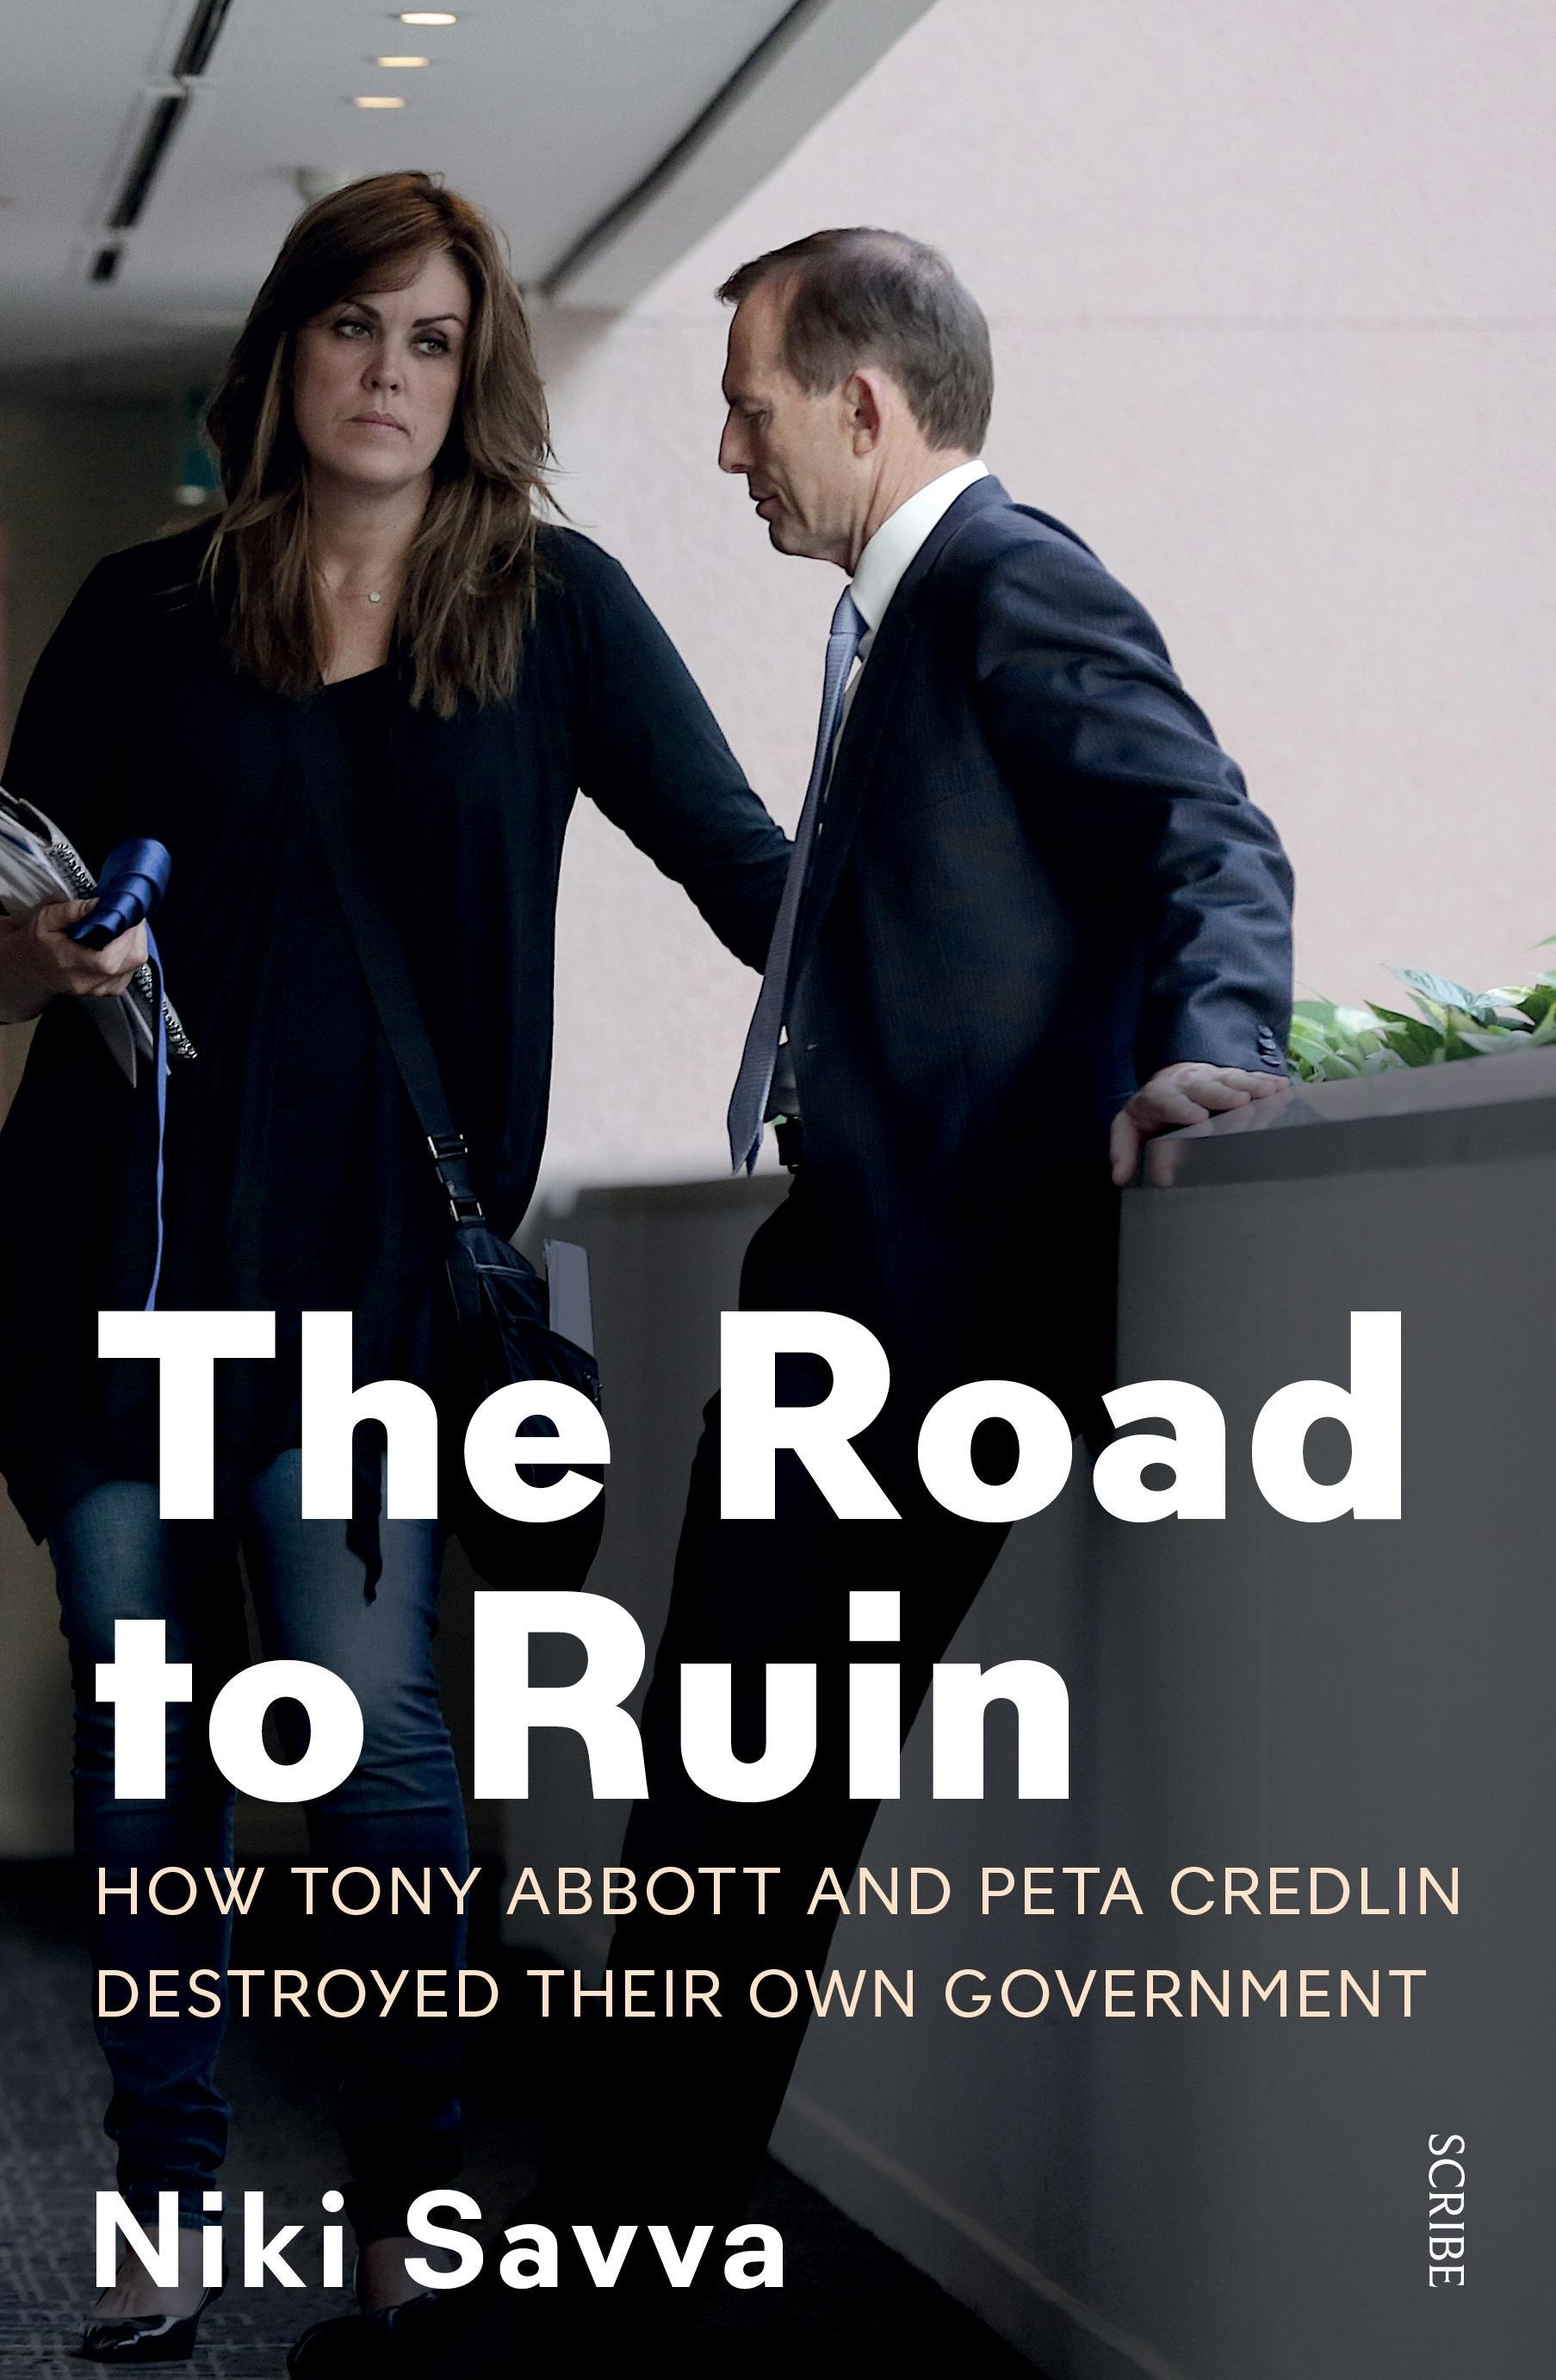 The Road to Ruin: How Tony Abbott and Peta Credlin Destroyed their own Government,